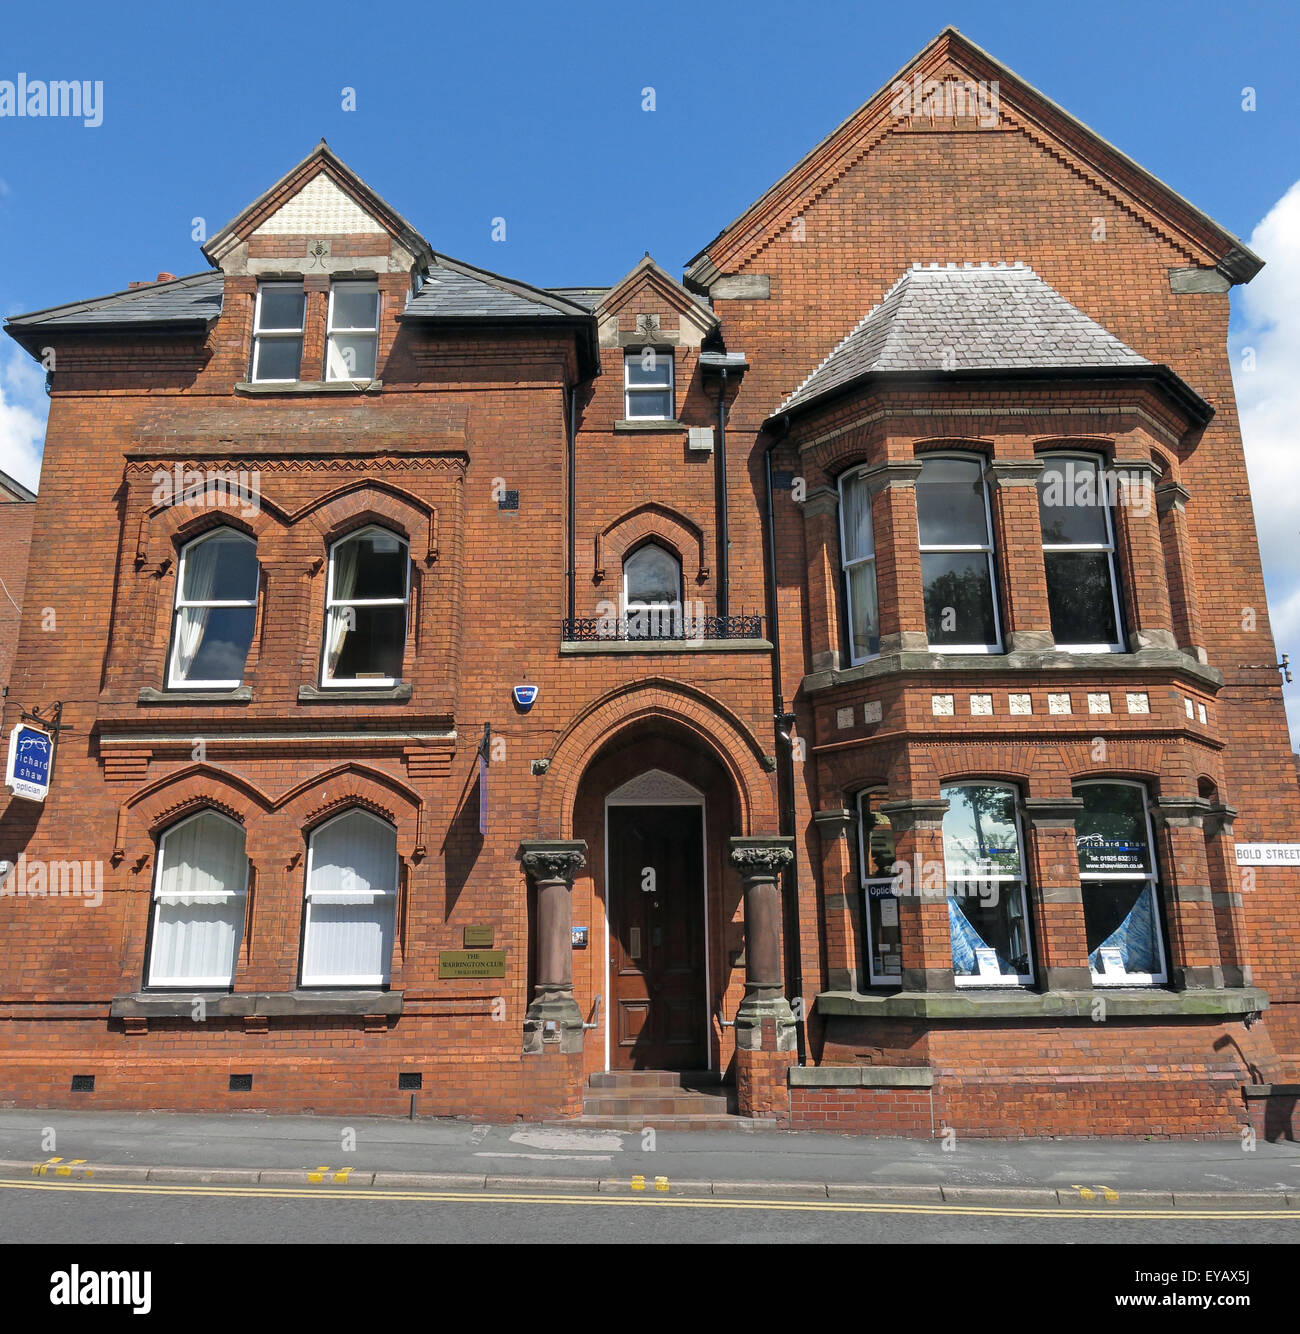 The Warrington Club,Bold St, Cheshire,England,UK - Stock Image